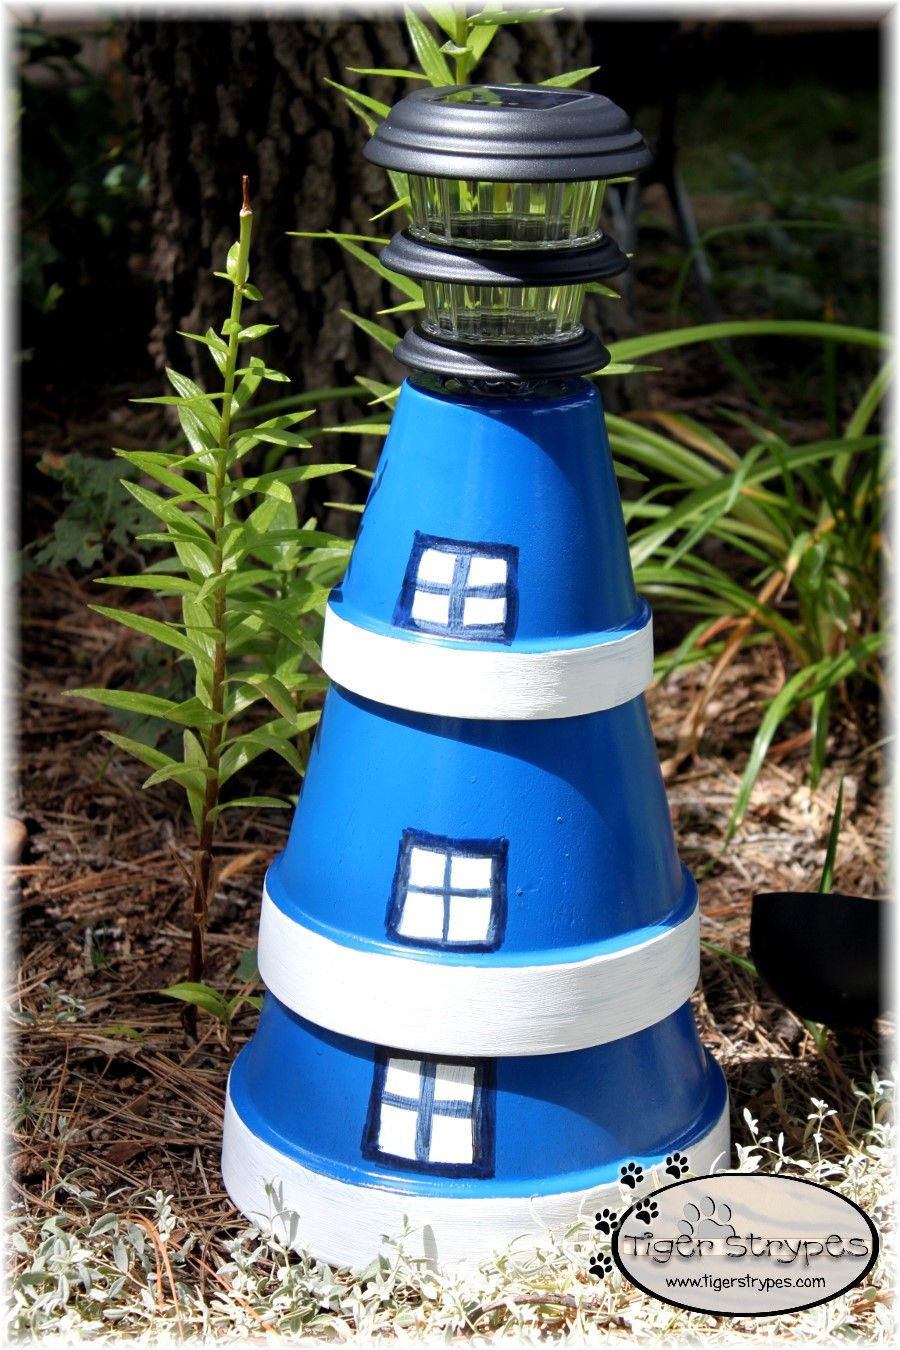 Transform Planters into a Lighthouse #TigerStrypesBlog ... on amish christmas decor, amish gardening tips, amish well covers, amish hutch plans, amish toys, amish duck houses, amish gifts, amish hay equipment, amish tractors, amish wooden garages, amish stoneware, amish fence posts, amish animals, amish plates, amish dinnerware, amish garage plans, amish tools, amish garden wagon, amish telephone booths,